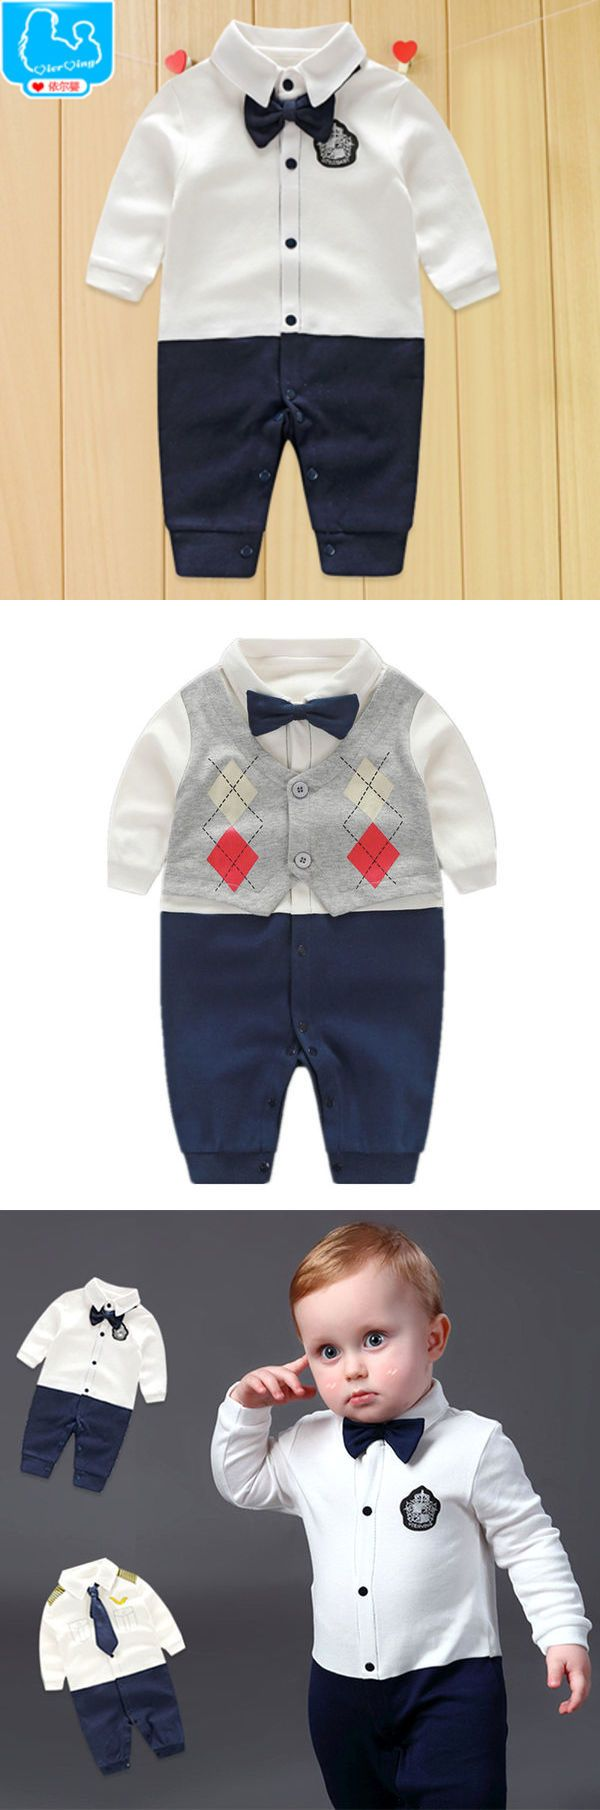 Handsome Baby Rompers Newborn 0-18M Gentleman Clothing Set Infant Bow Tie Clothes